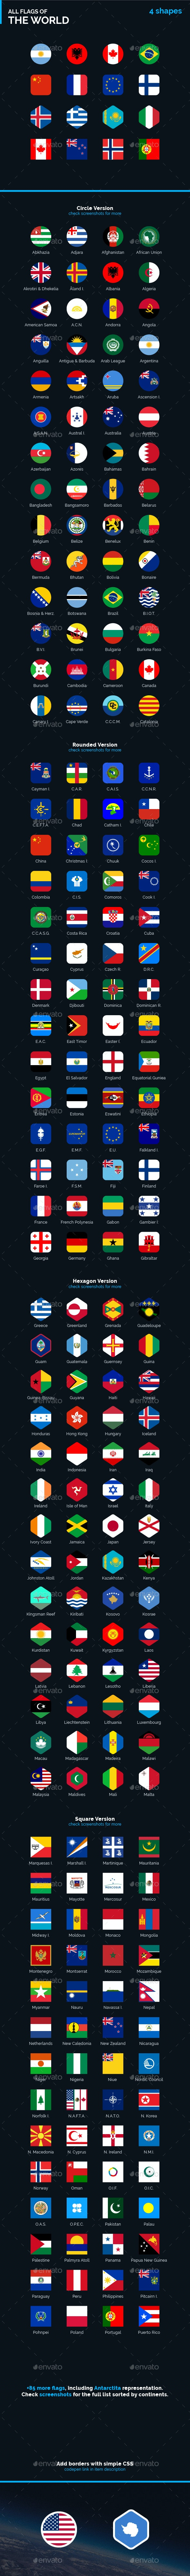 Flags of the World - Flag Icon Bundle - Web Icons